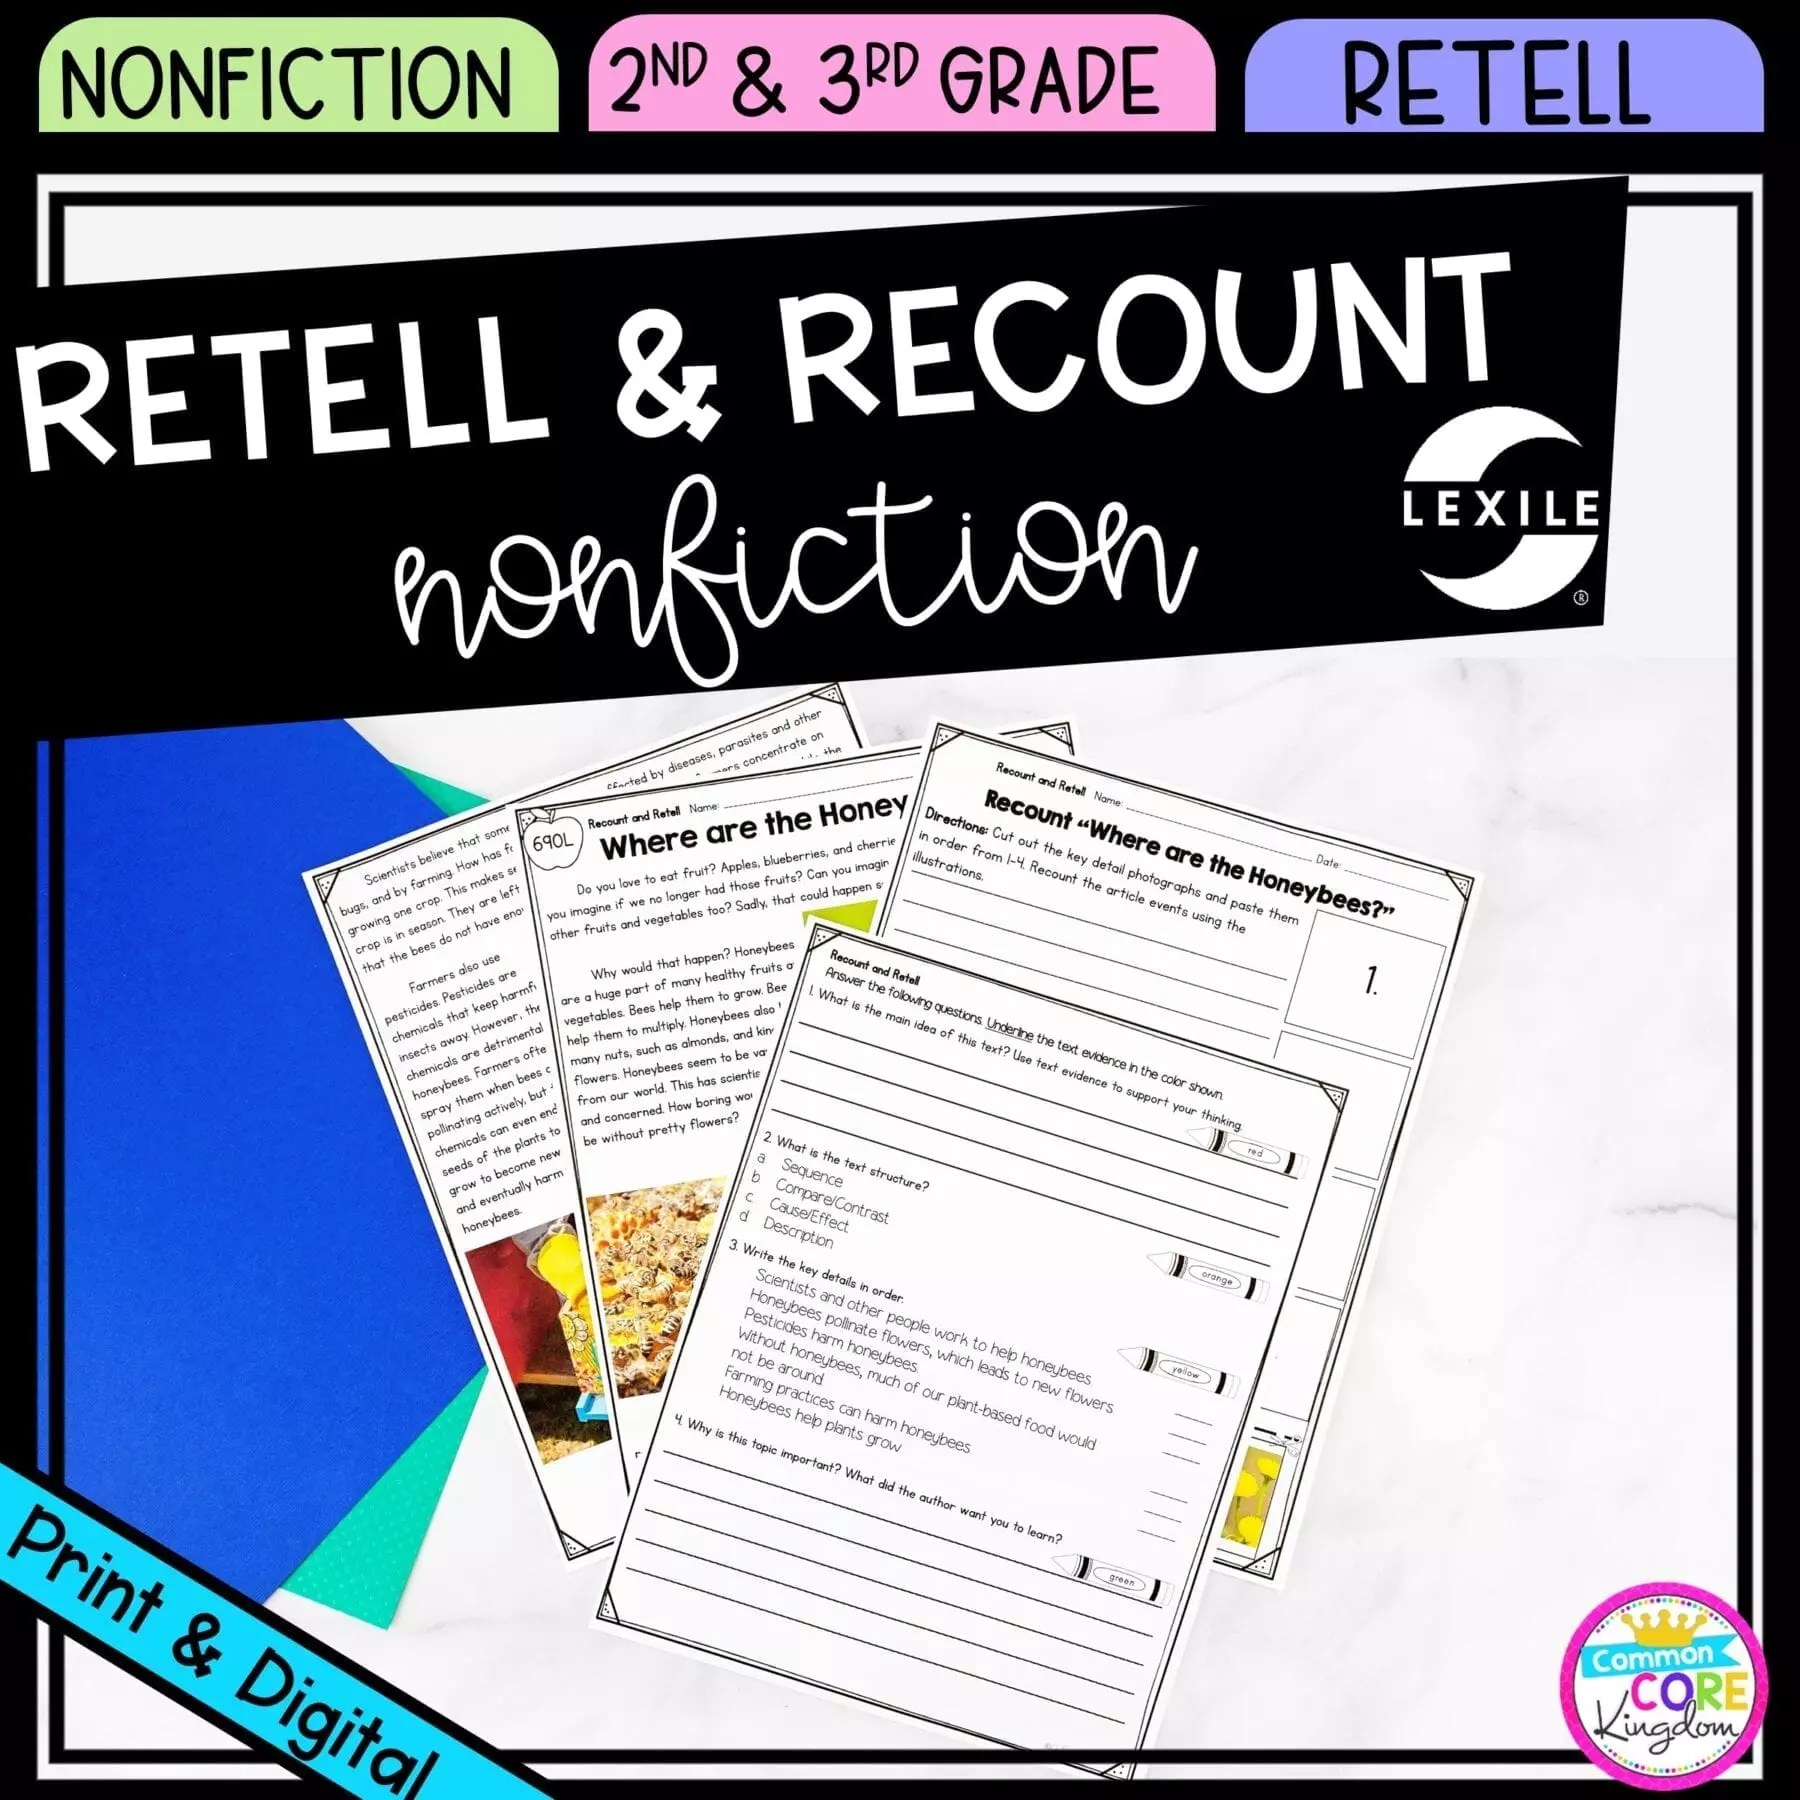 hight resolution of Retell and Recount Nonfiction 2nd \u0026 3rd Grade - Google Distance Learning    Common Core Kingdom